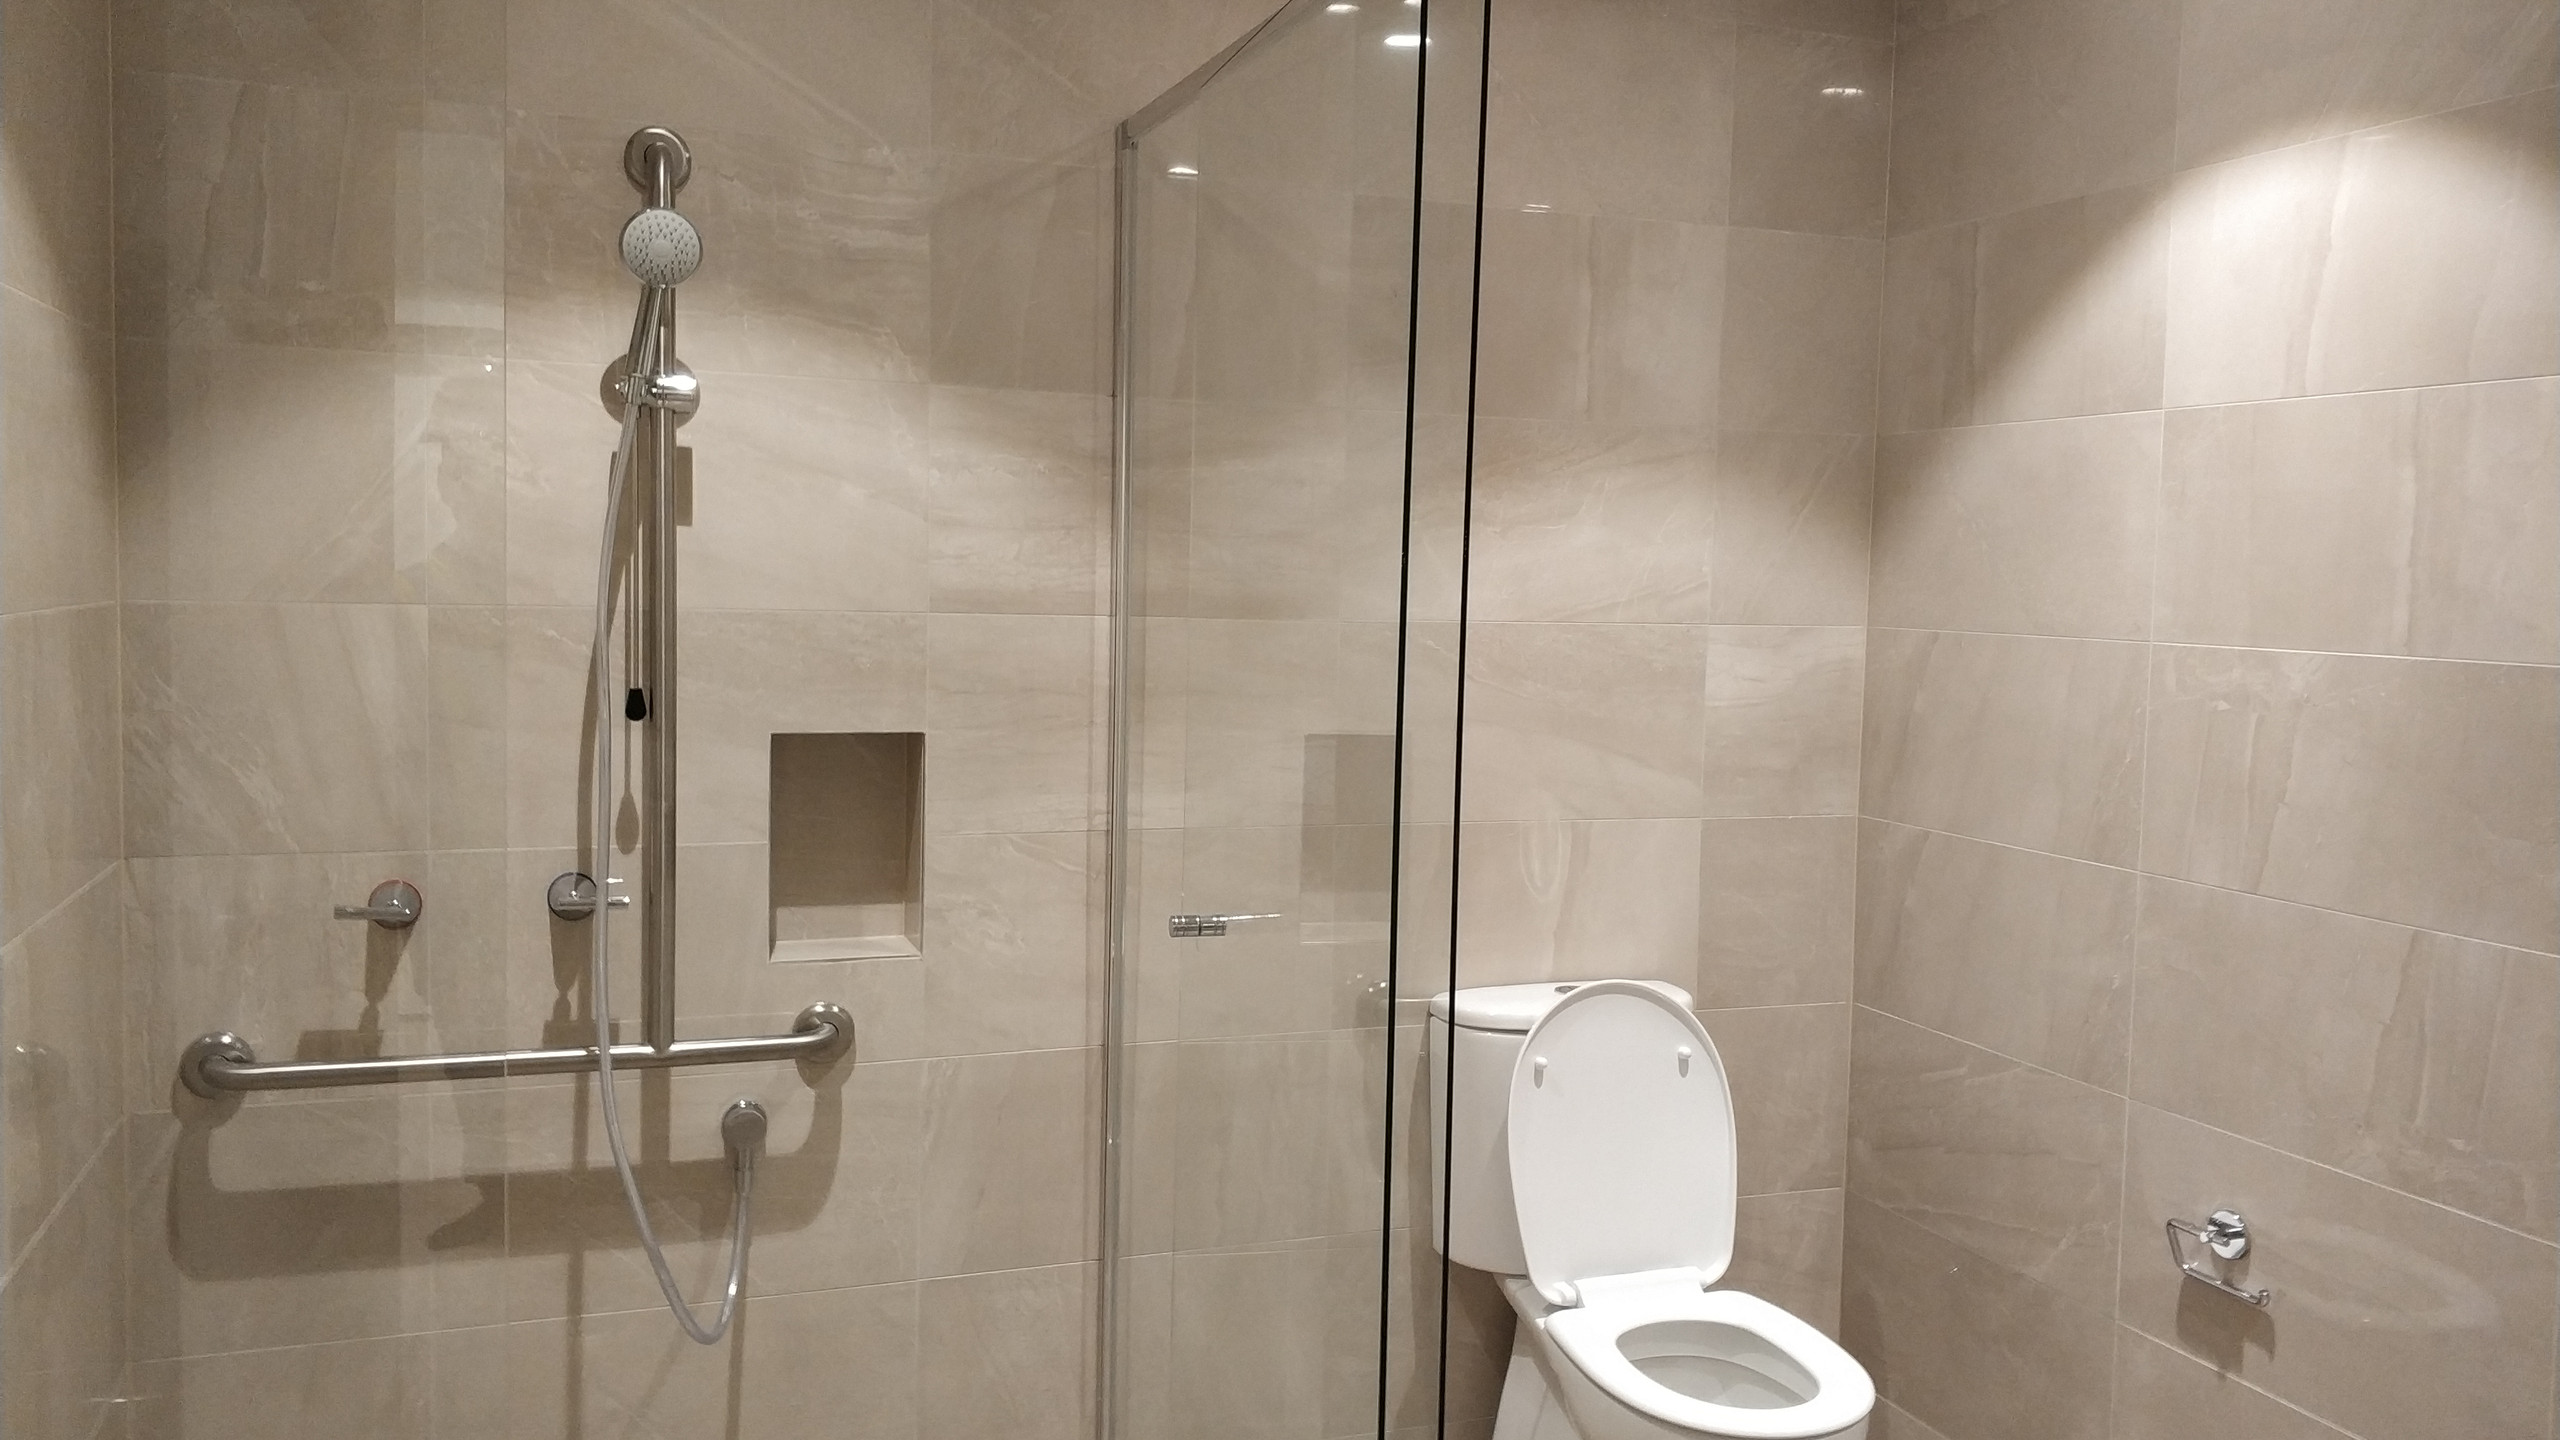 Shower and Toilet Wall Tiles at Toongabbie Project